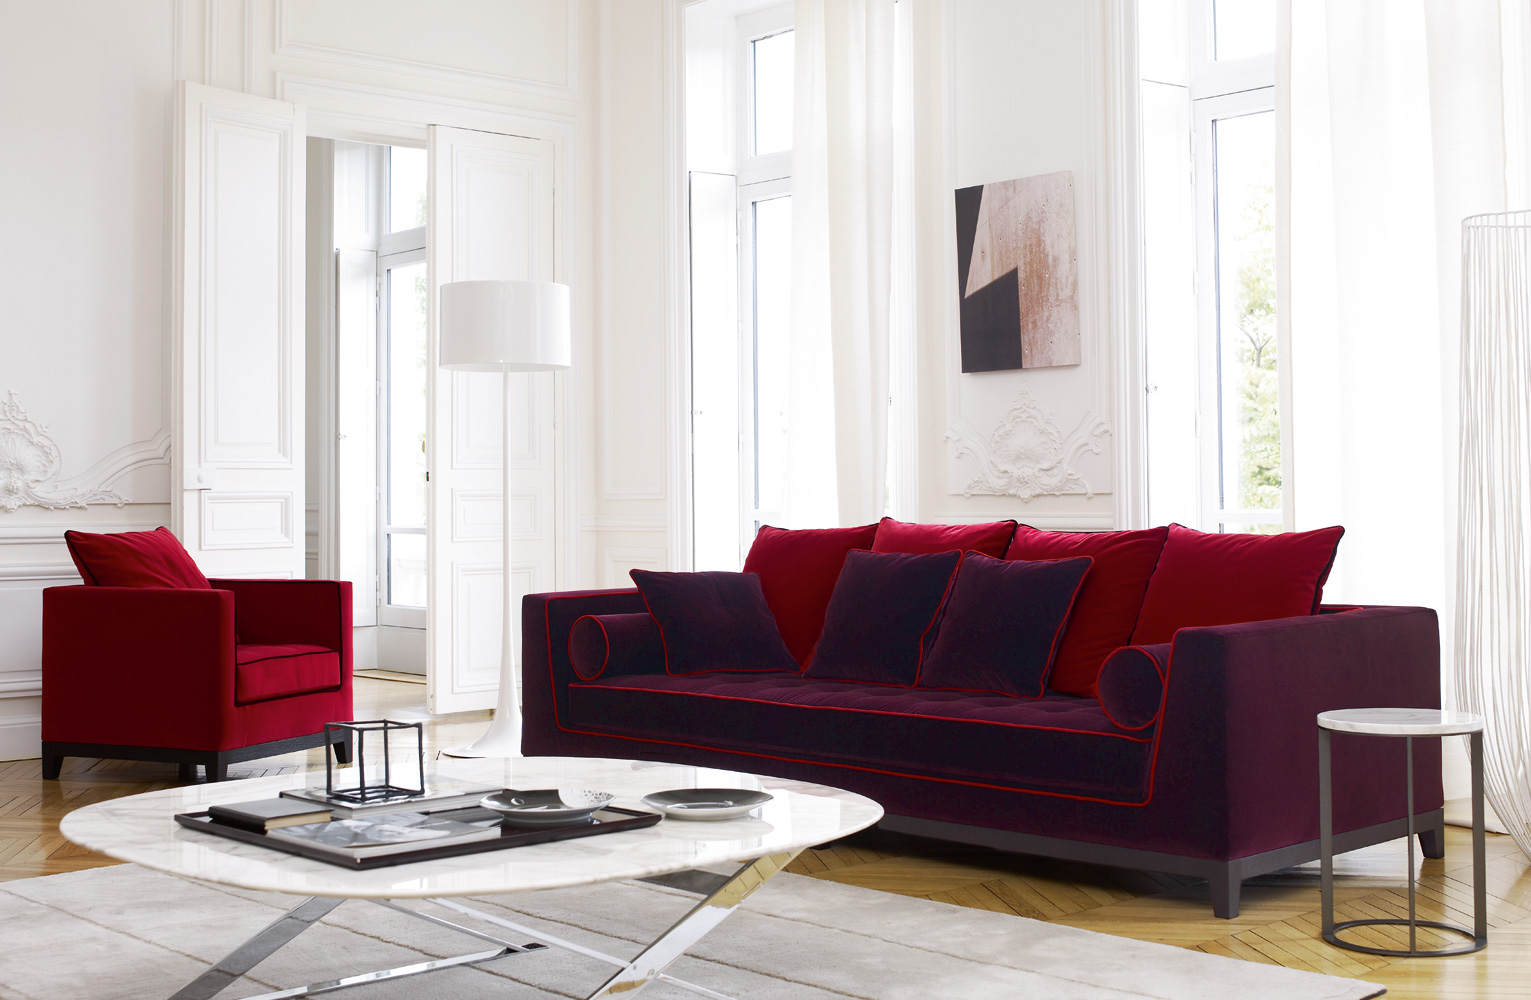 Maxalto b b italia lutetia 2011 sofa buy from campbell for B b couch